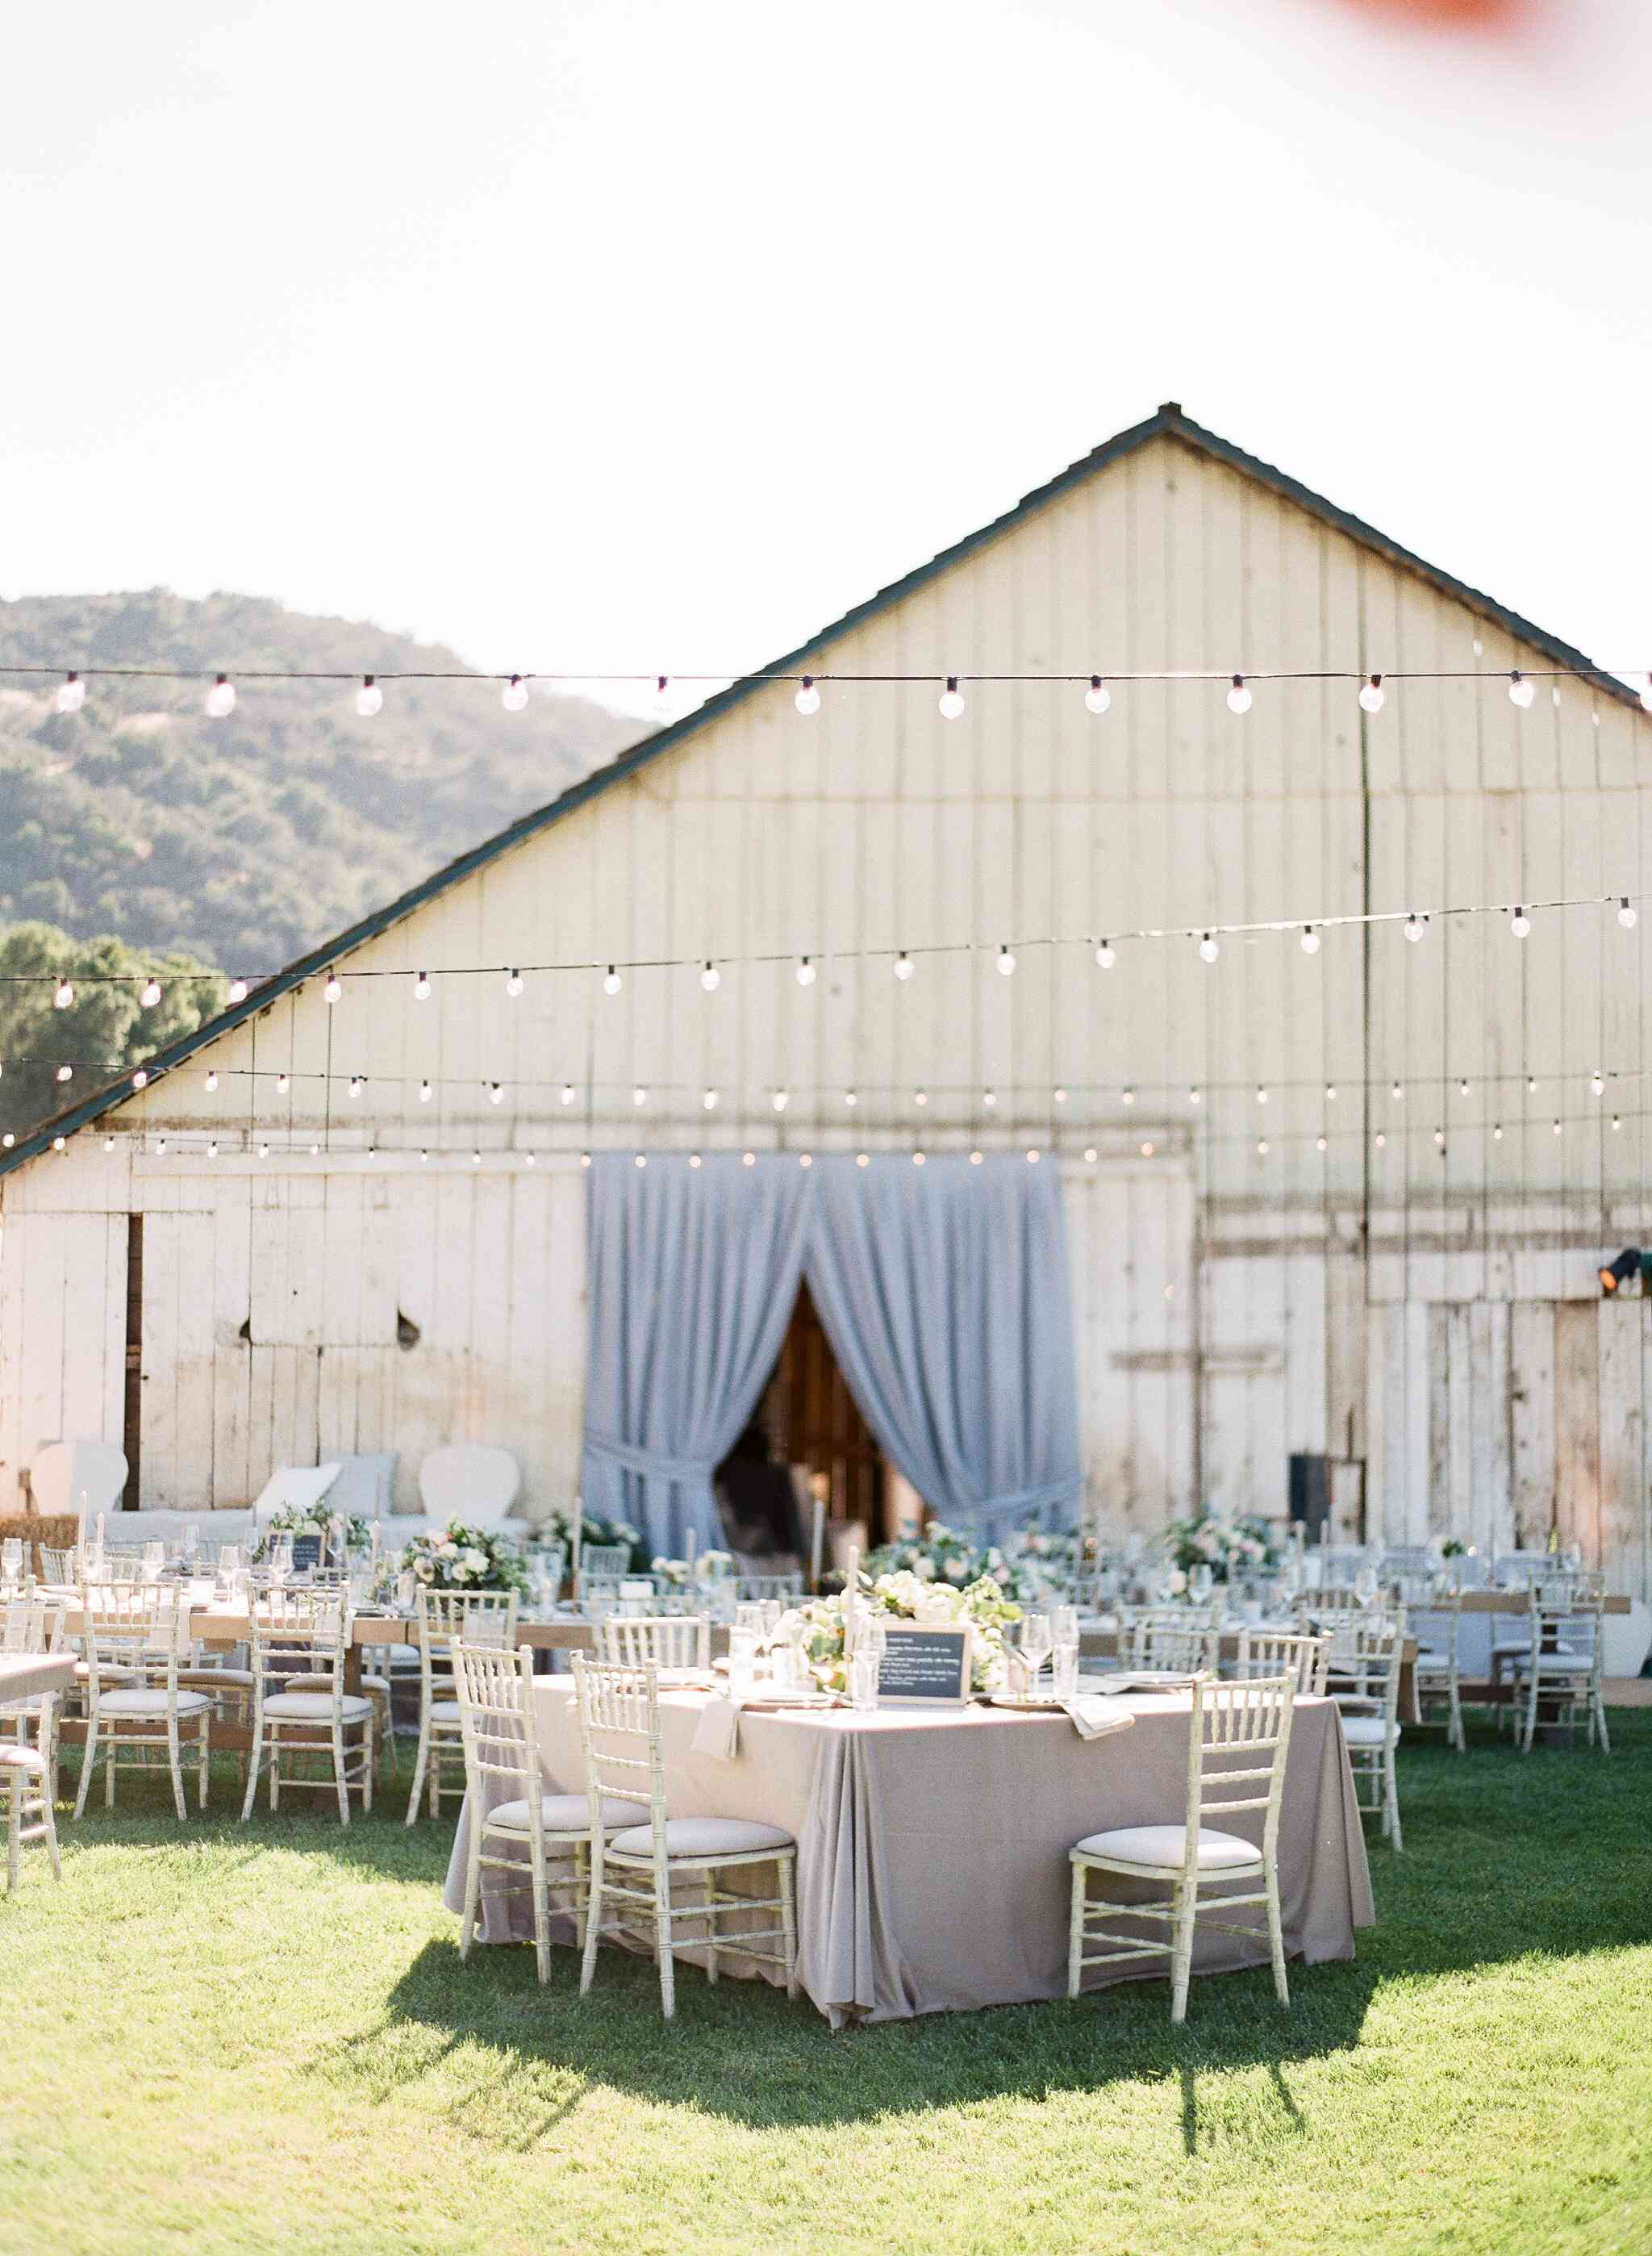 Tables set up in front of a barn-like home